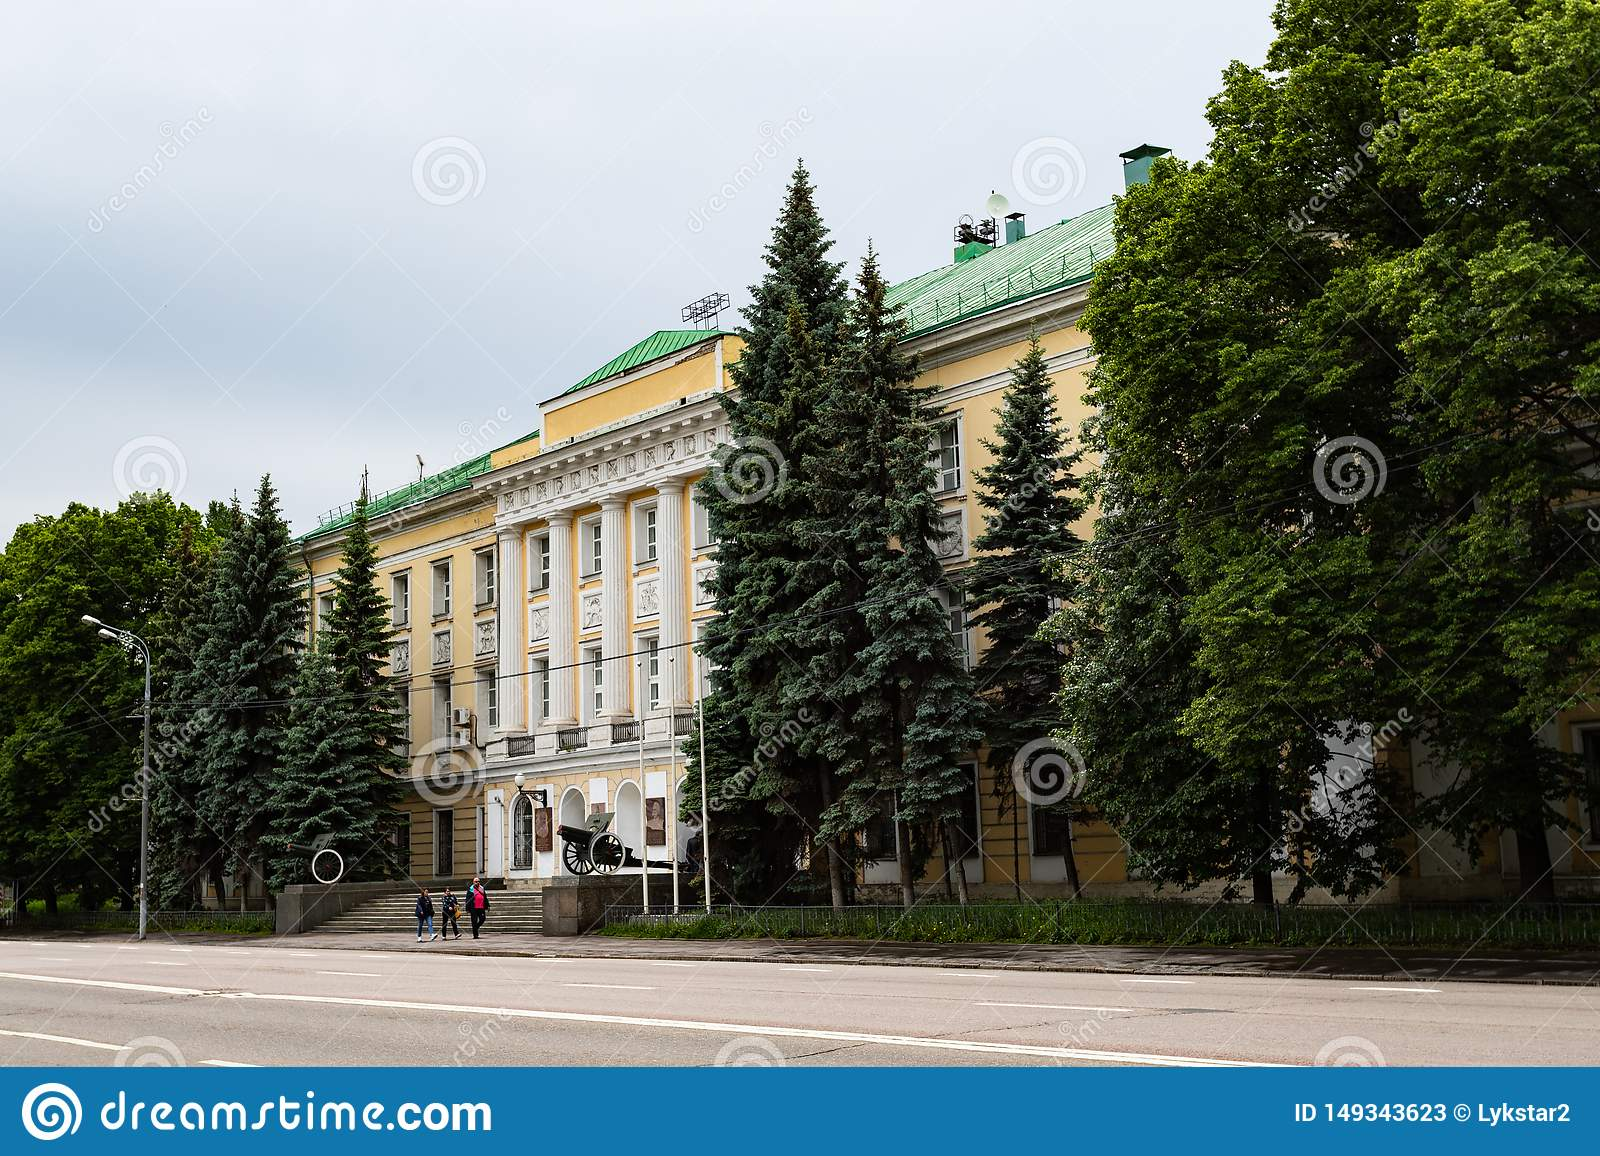 Moscow, Russia may 25, 2019, a historical monument of the 18th century the building of the military Department, the former Palace